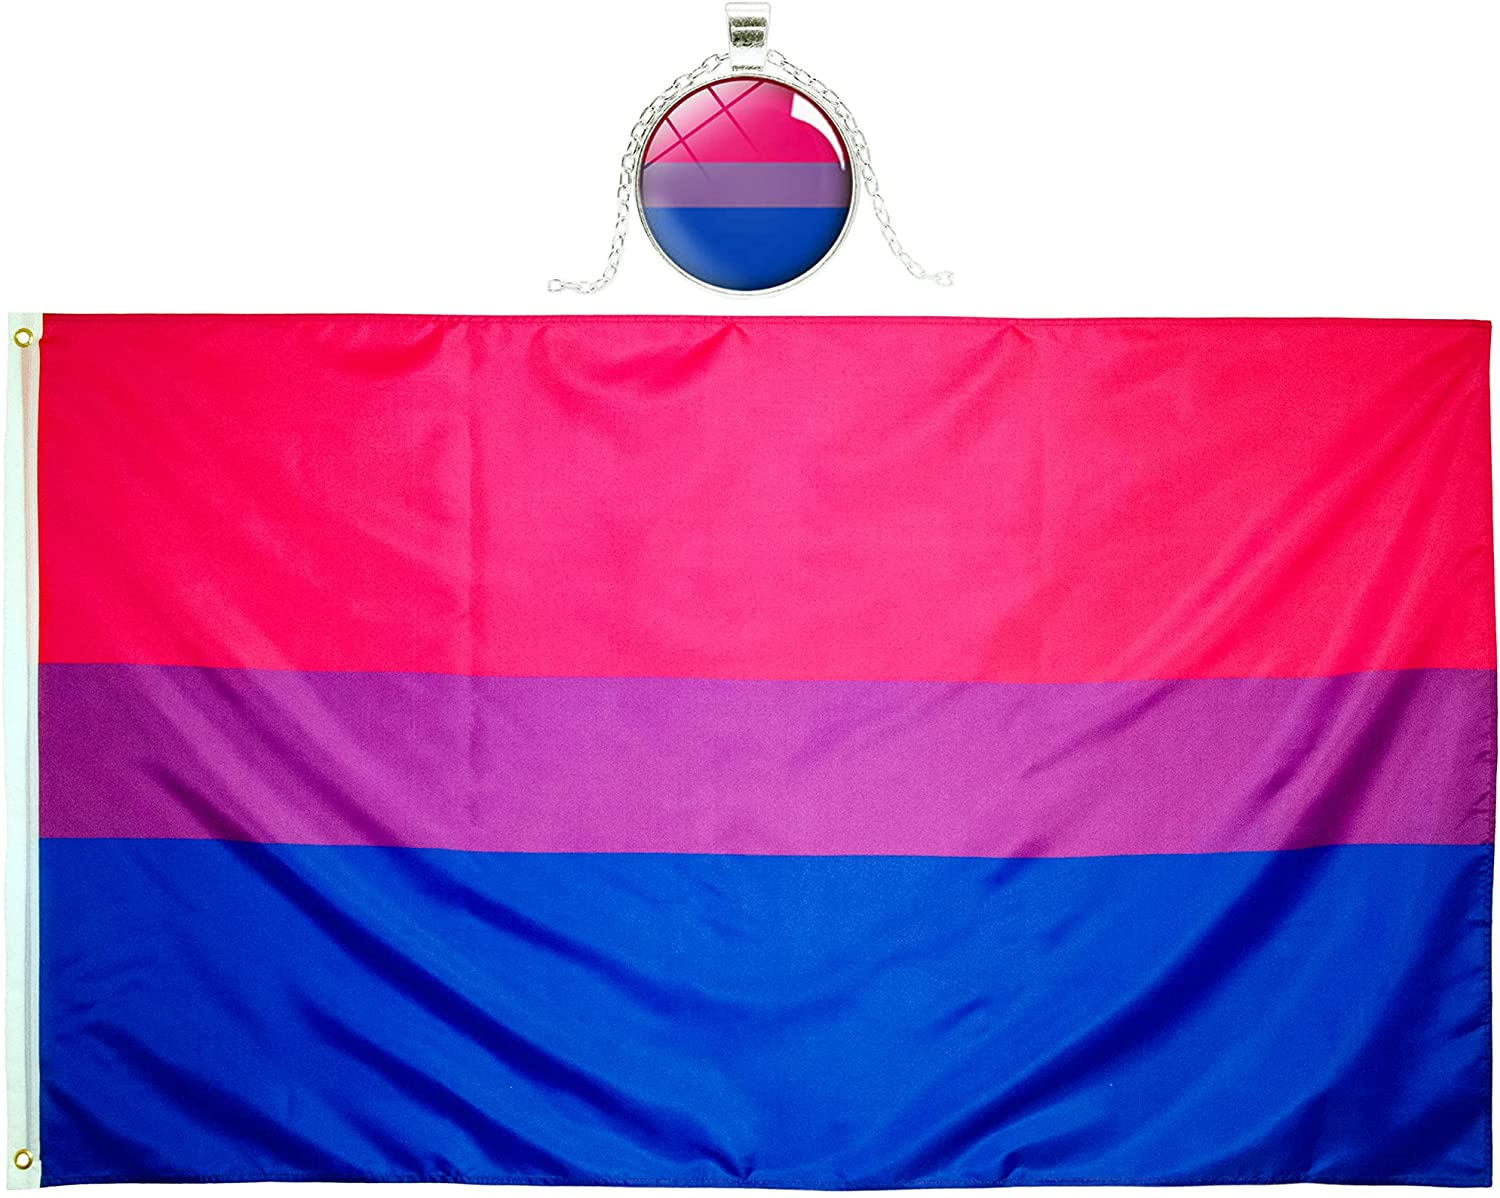 Eugenys Superior Bi Pride Flag price 3x5 Feet Included Free Necklace Nice -